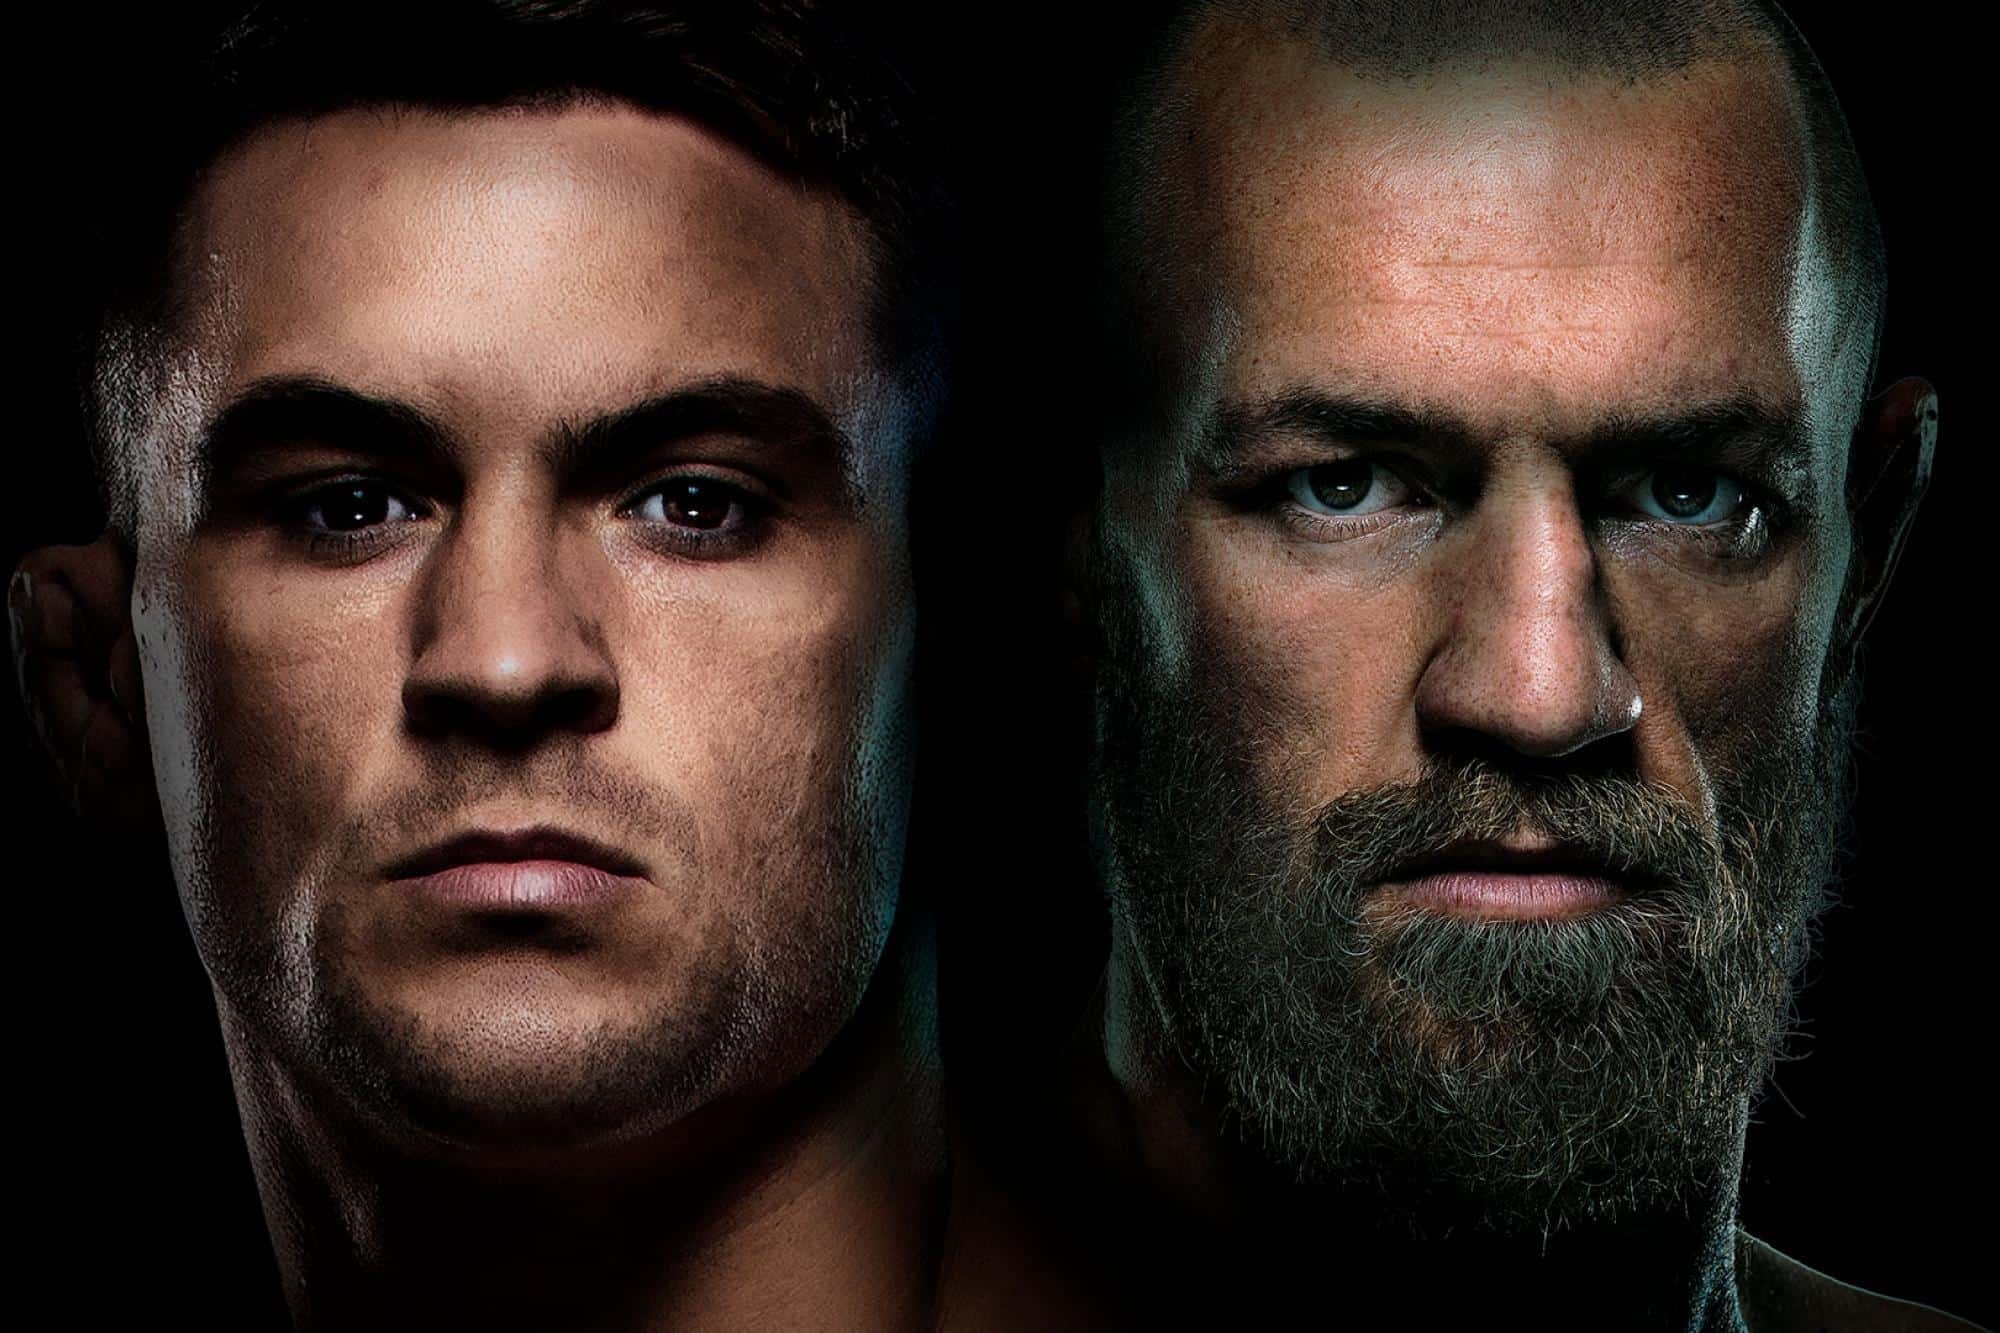 McGregor Vs Poirier III – How the Decider Will Play Out